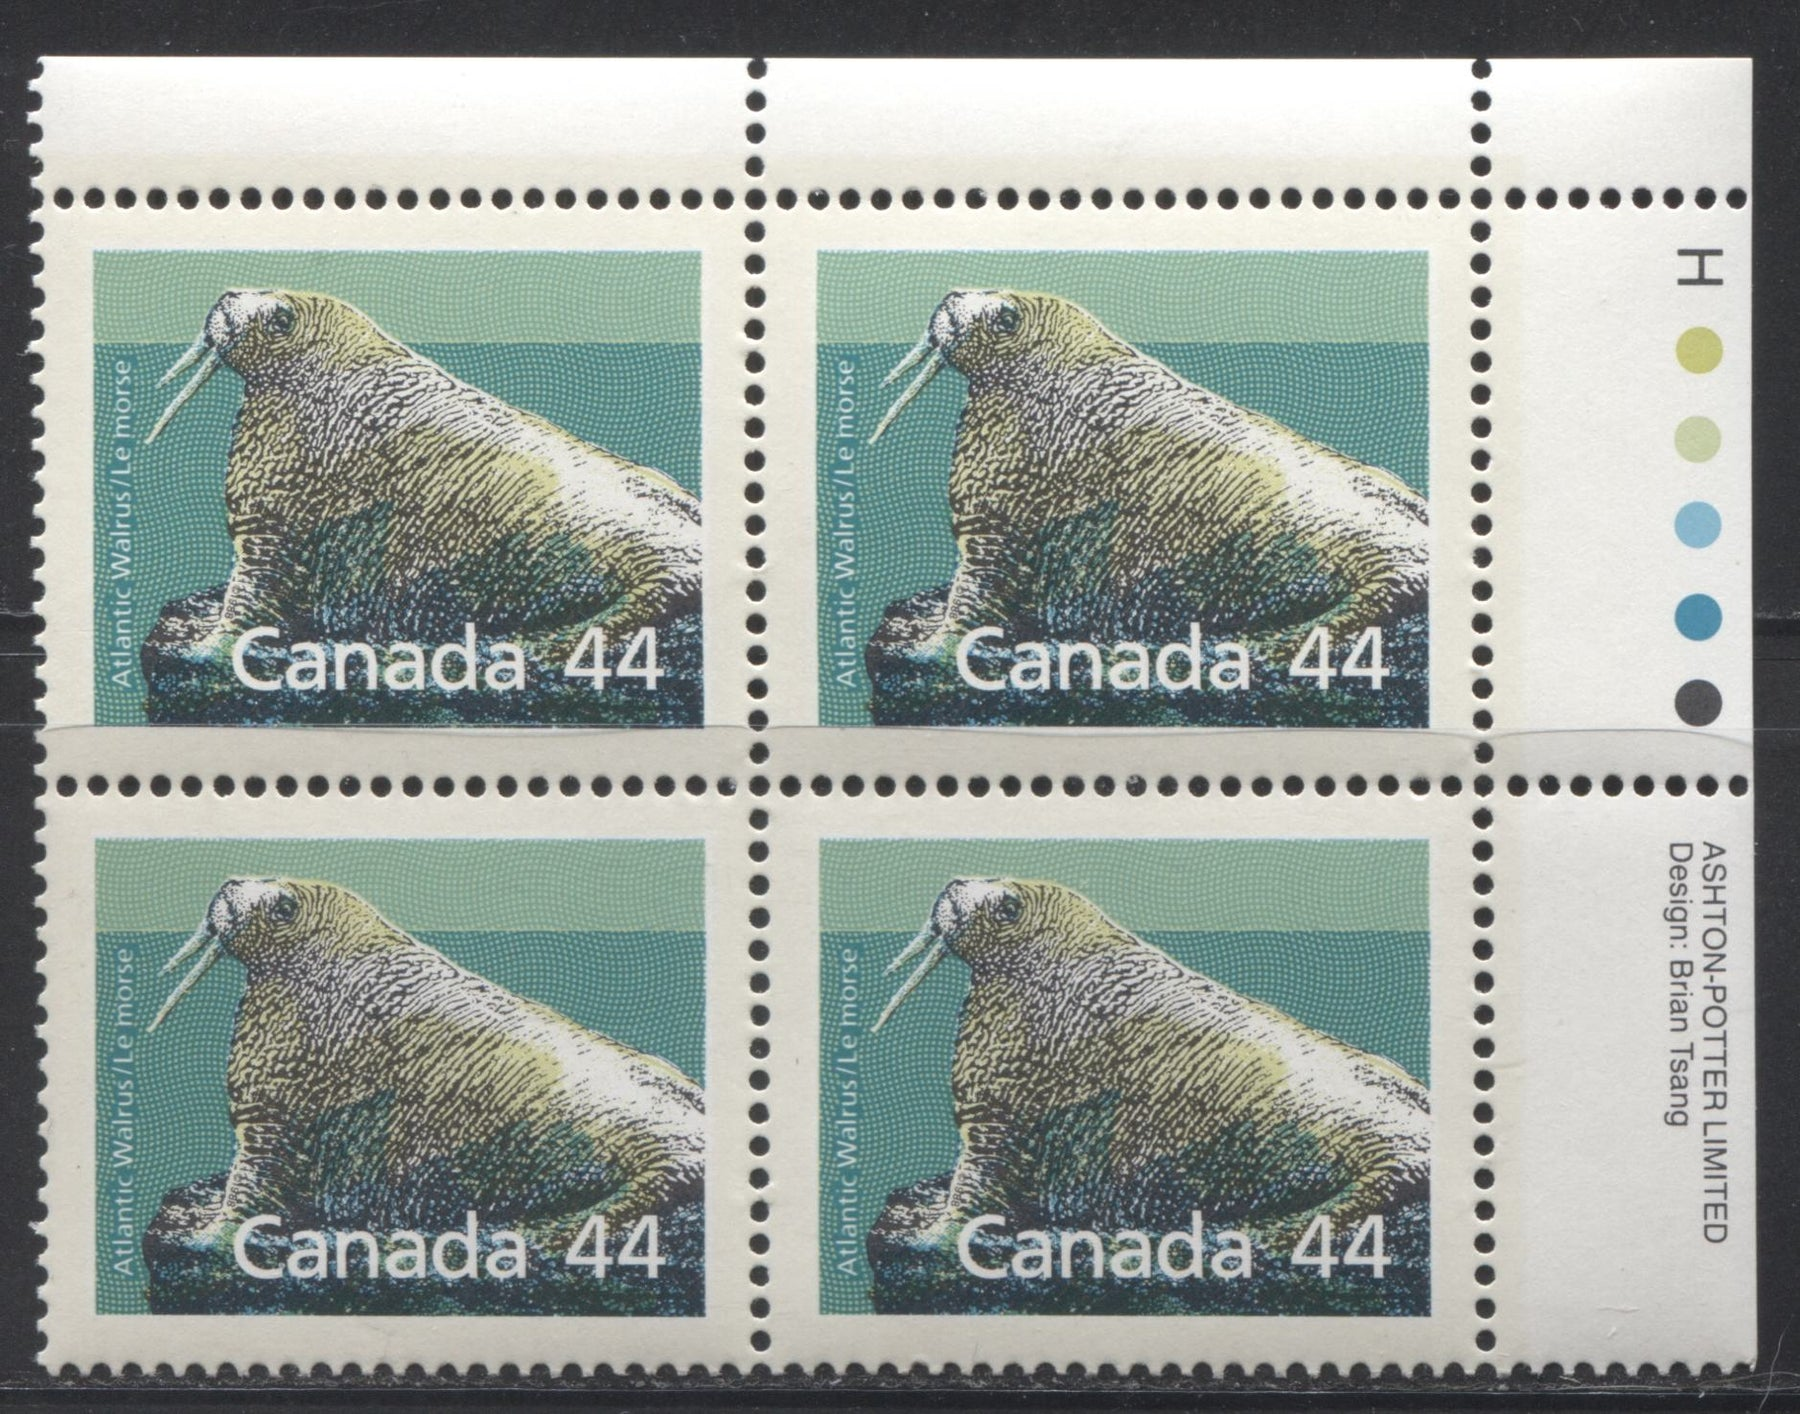 Canada #1171 44c Multicolored Atlantic Walrus 1988-1991 Wildlife and Architecture Issue, VFNH UR Inscription Block on NF/DF Harrison Paper